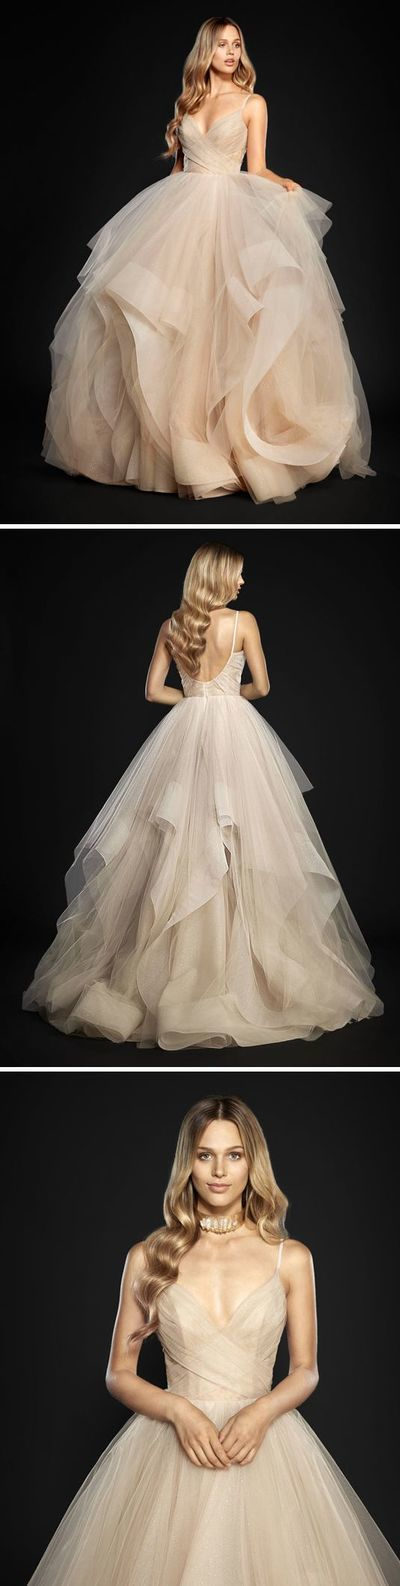 Backless Ball Gown,Layered Tulle Prom Dress,Custom Made Evening Dress,17138